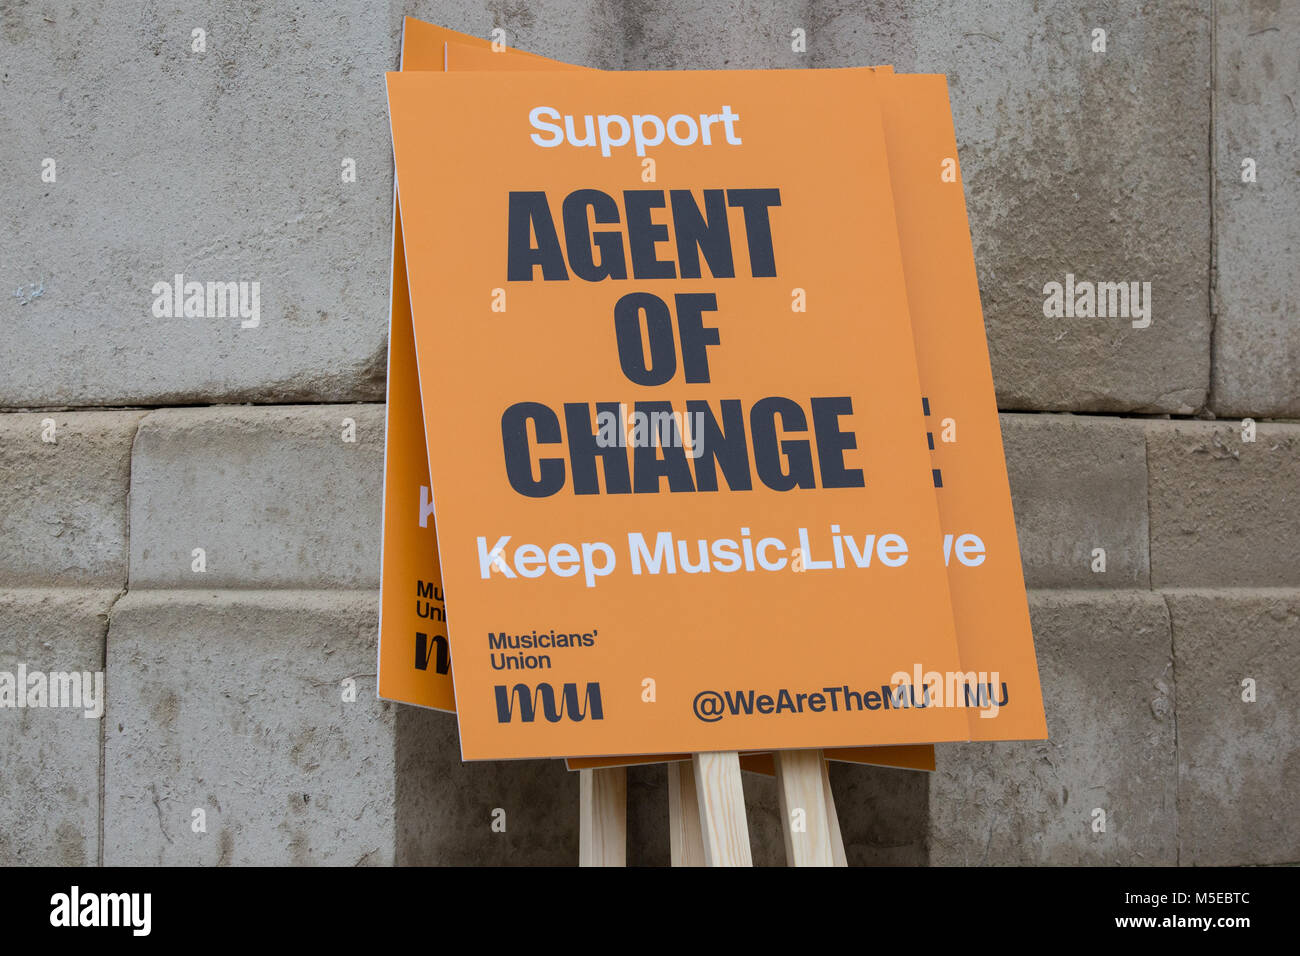 London, UK. 10th Jan, 2018. A placard for the Agent Of Change campaign at a protest in support of a Bill in Parliament - Stock Image